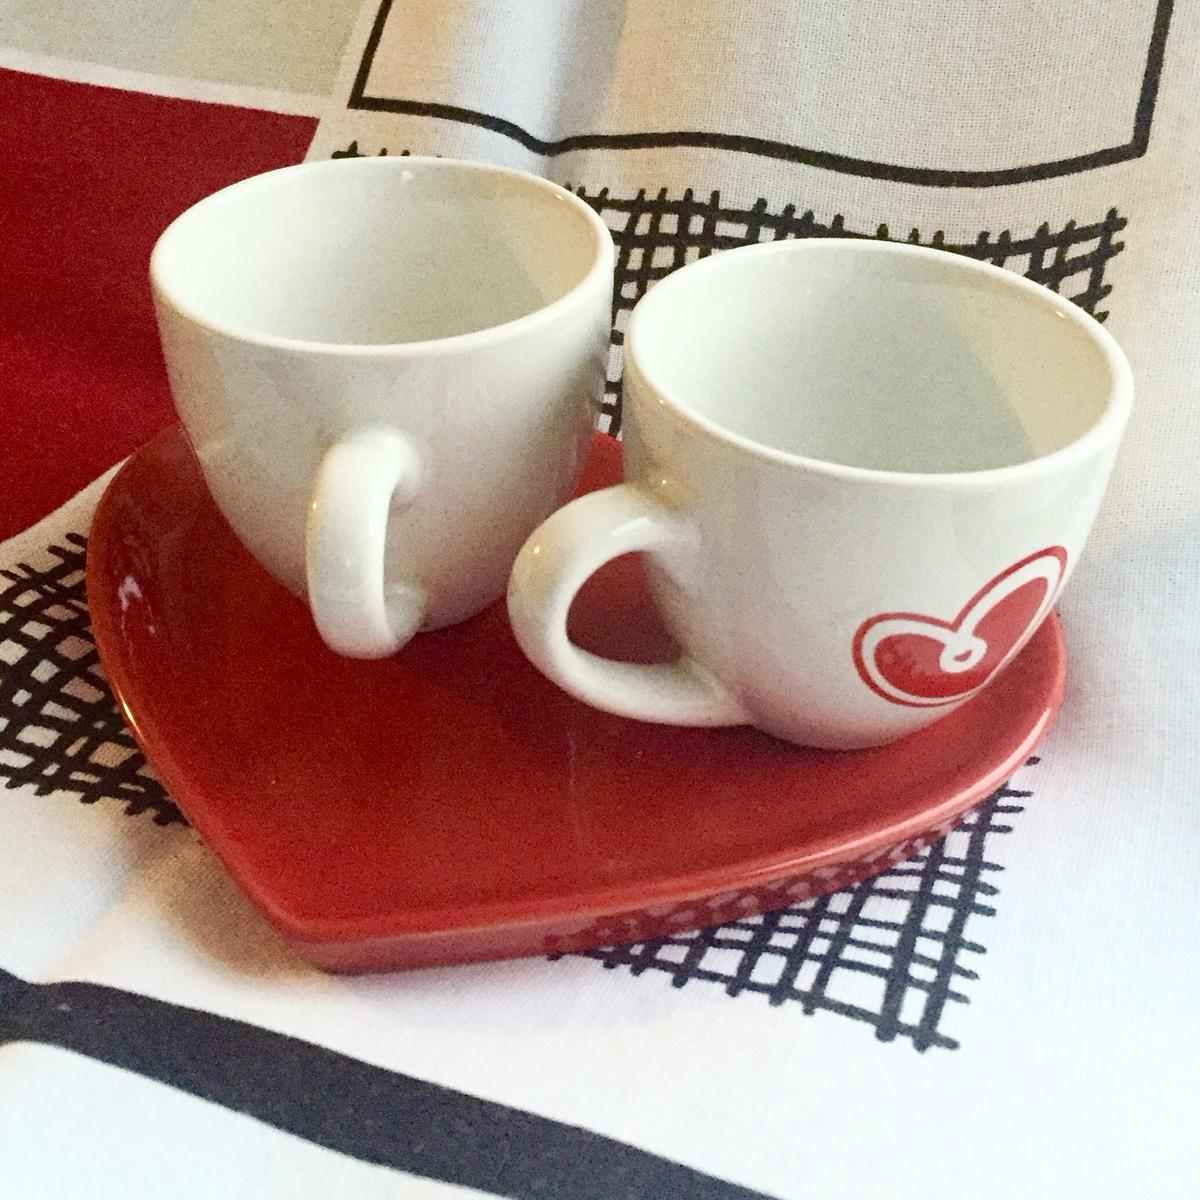 Costa #coffee cup mug & #saucer gift set for 2, View more on